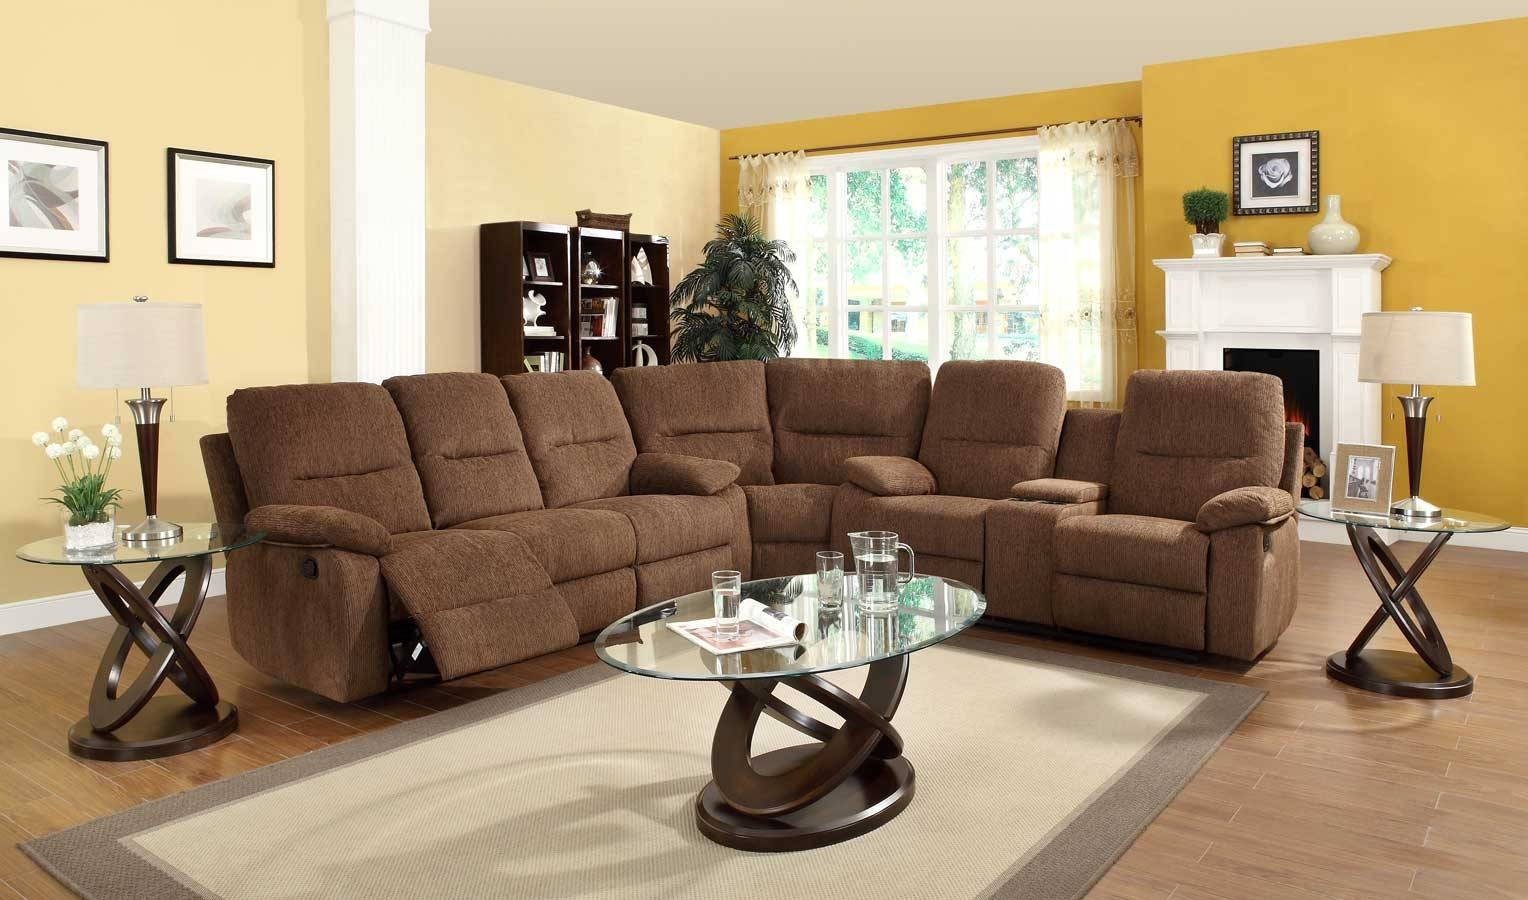 Homelegance Marianna Modular Reclining Sectional Sofa Set - Dark with regard to Recliner Sectional Sofas (Image 19 of 30)